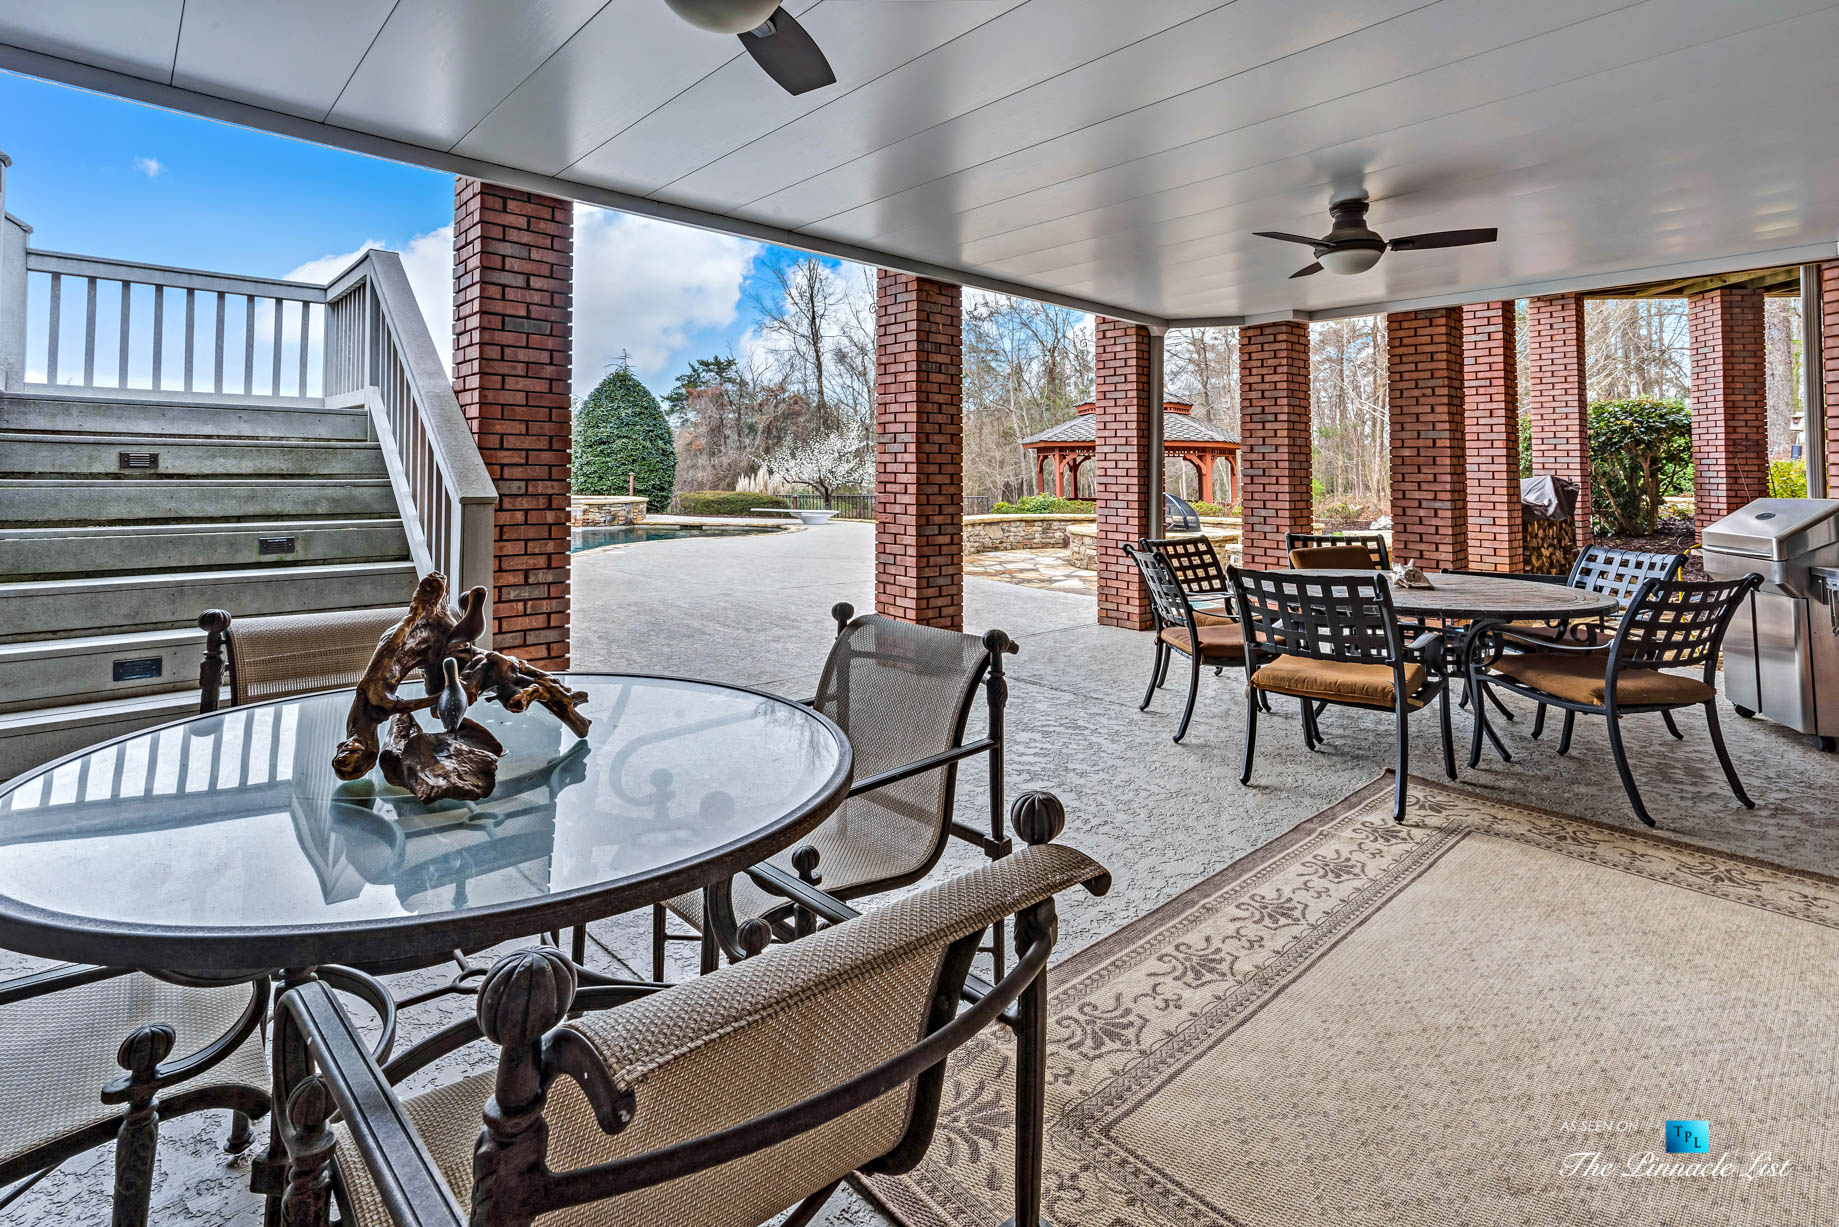 2219 Costley Mill Rd NE, Conyers, GA, USA - Covered Outdoor Patio - Luxury Real Estate - Equestrian Country Home